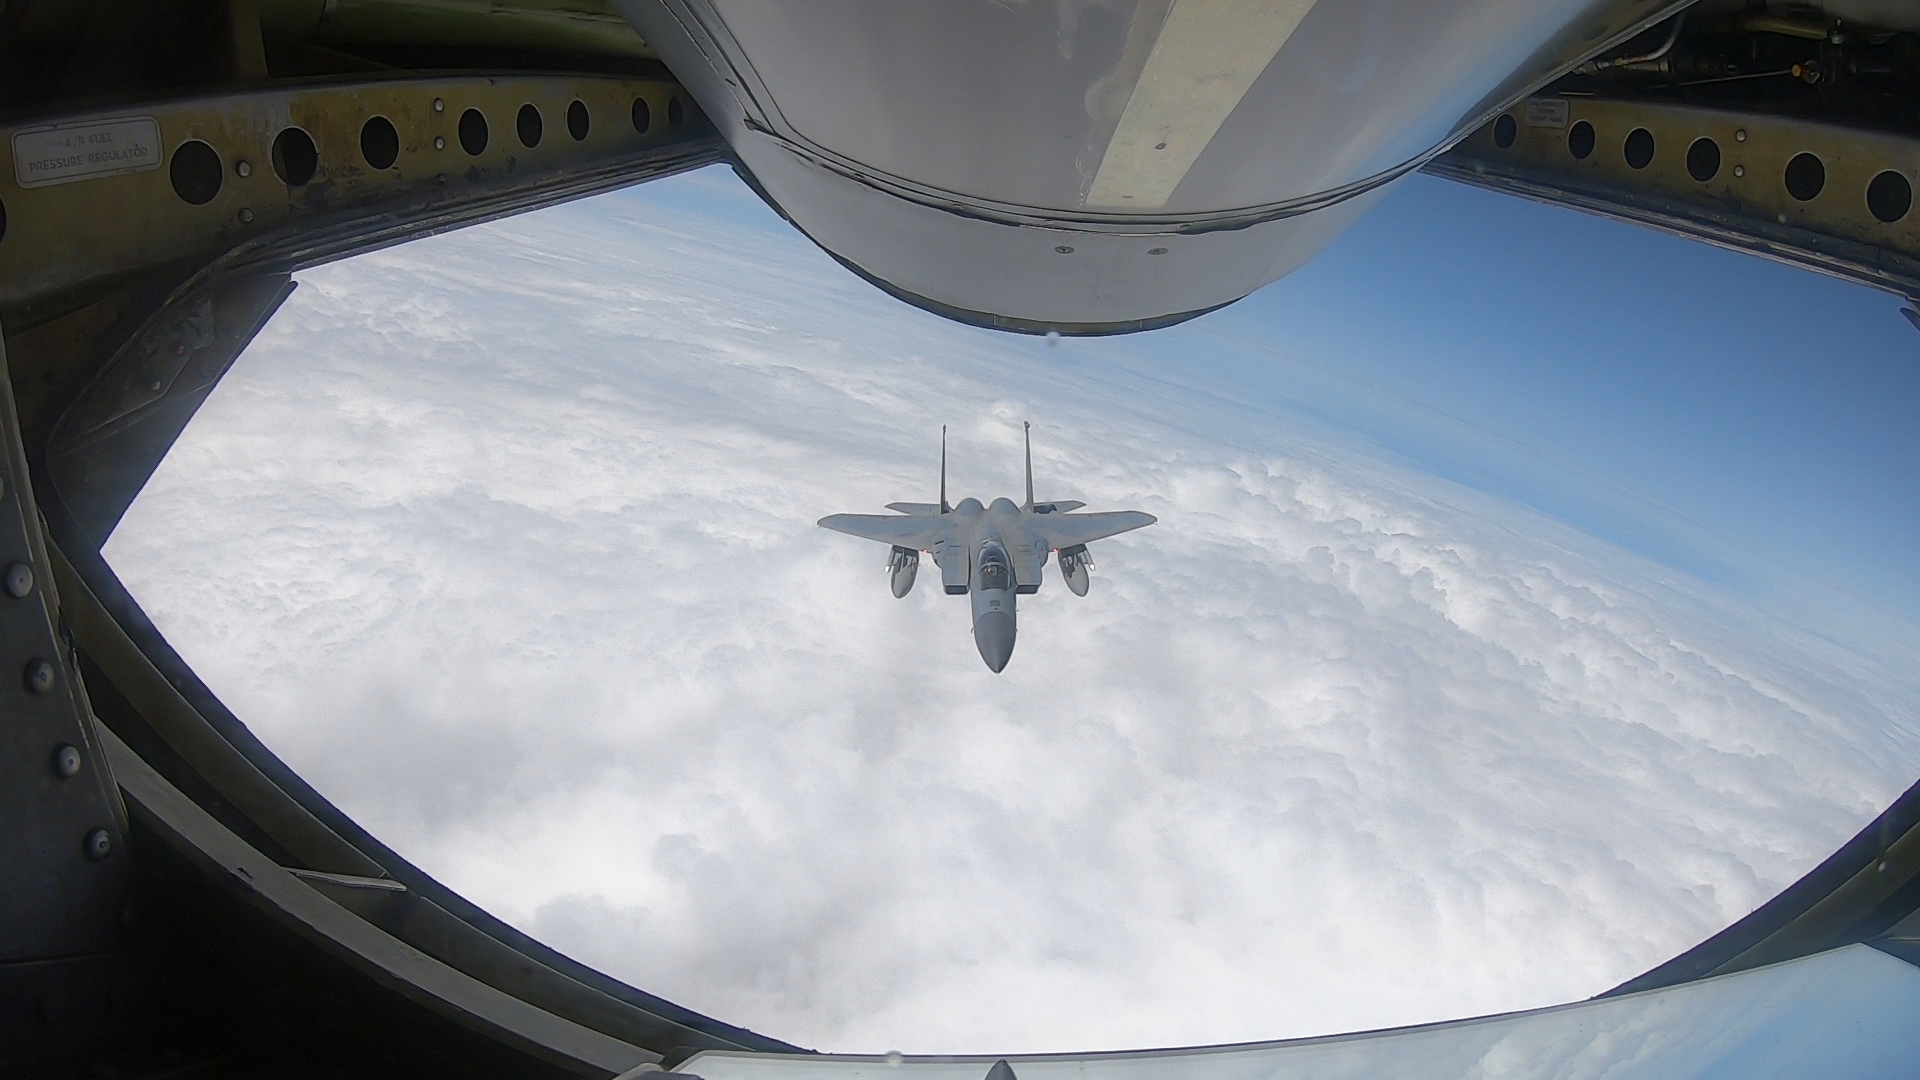 142nd fighter wing refueling